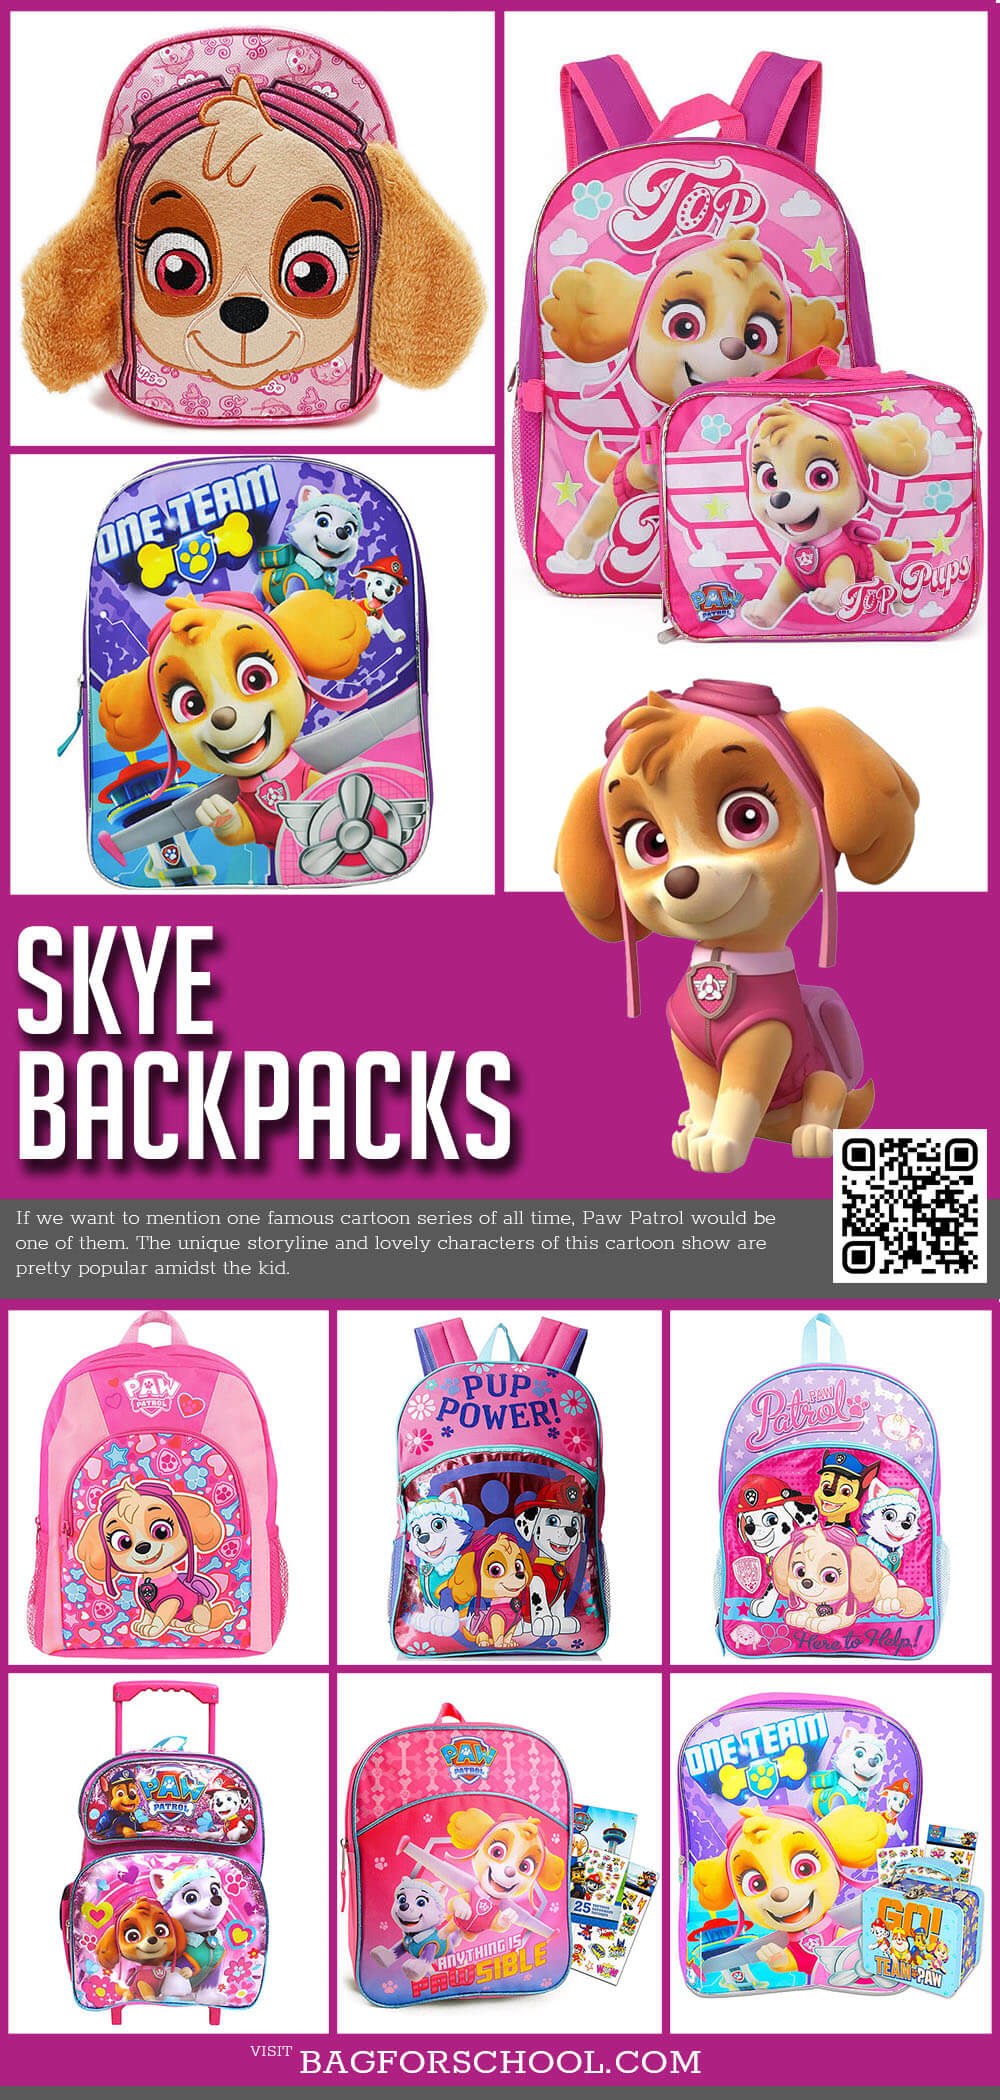 Skype Backpacks